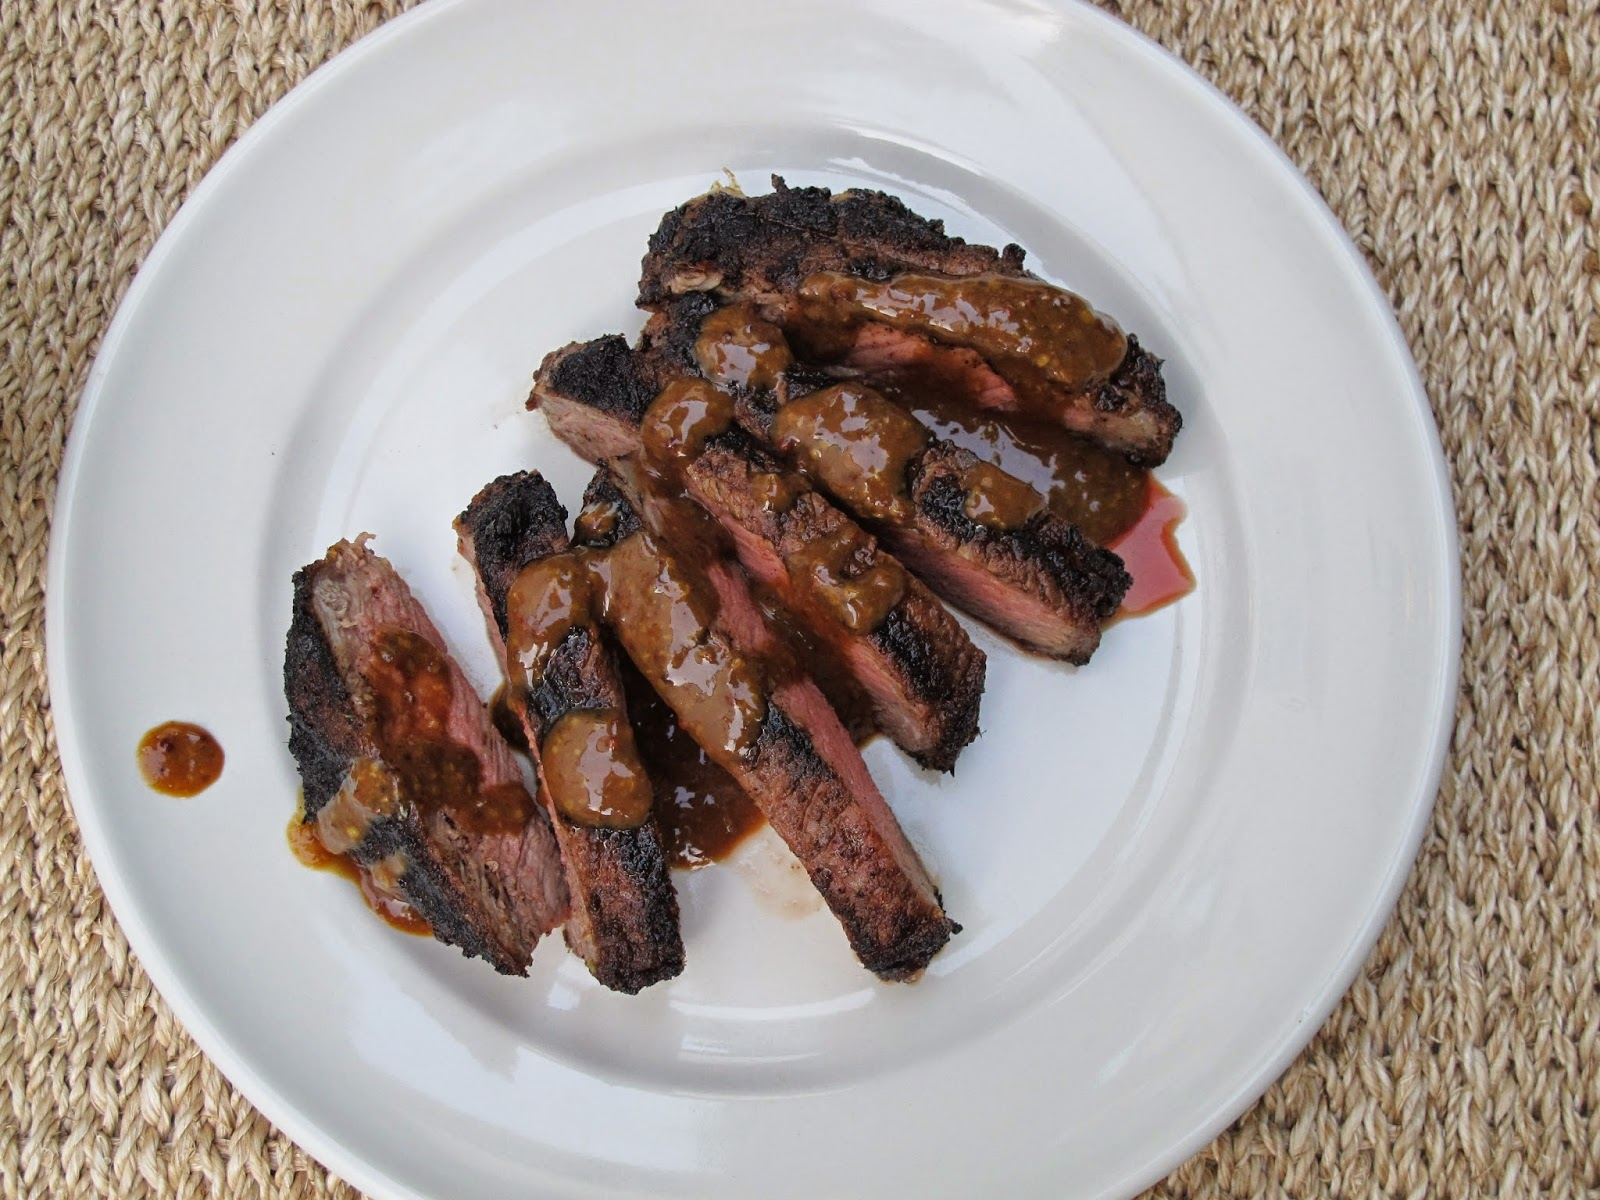 Grilled Spice-Rubbed Rib Eye Steak